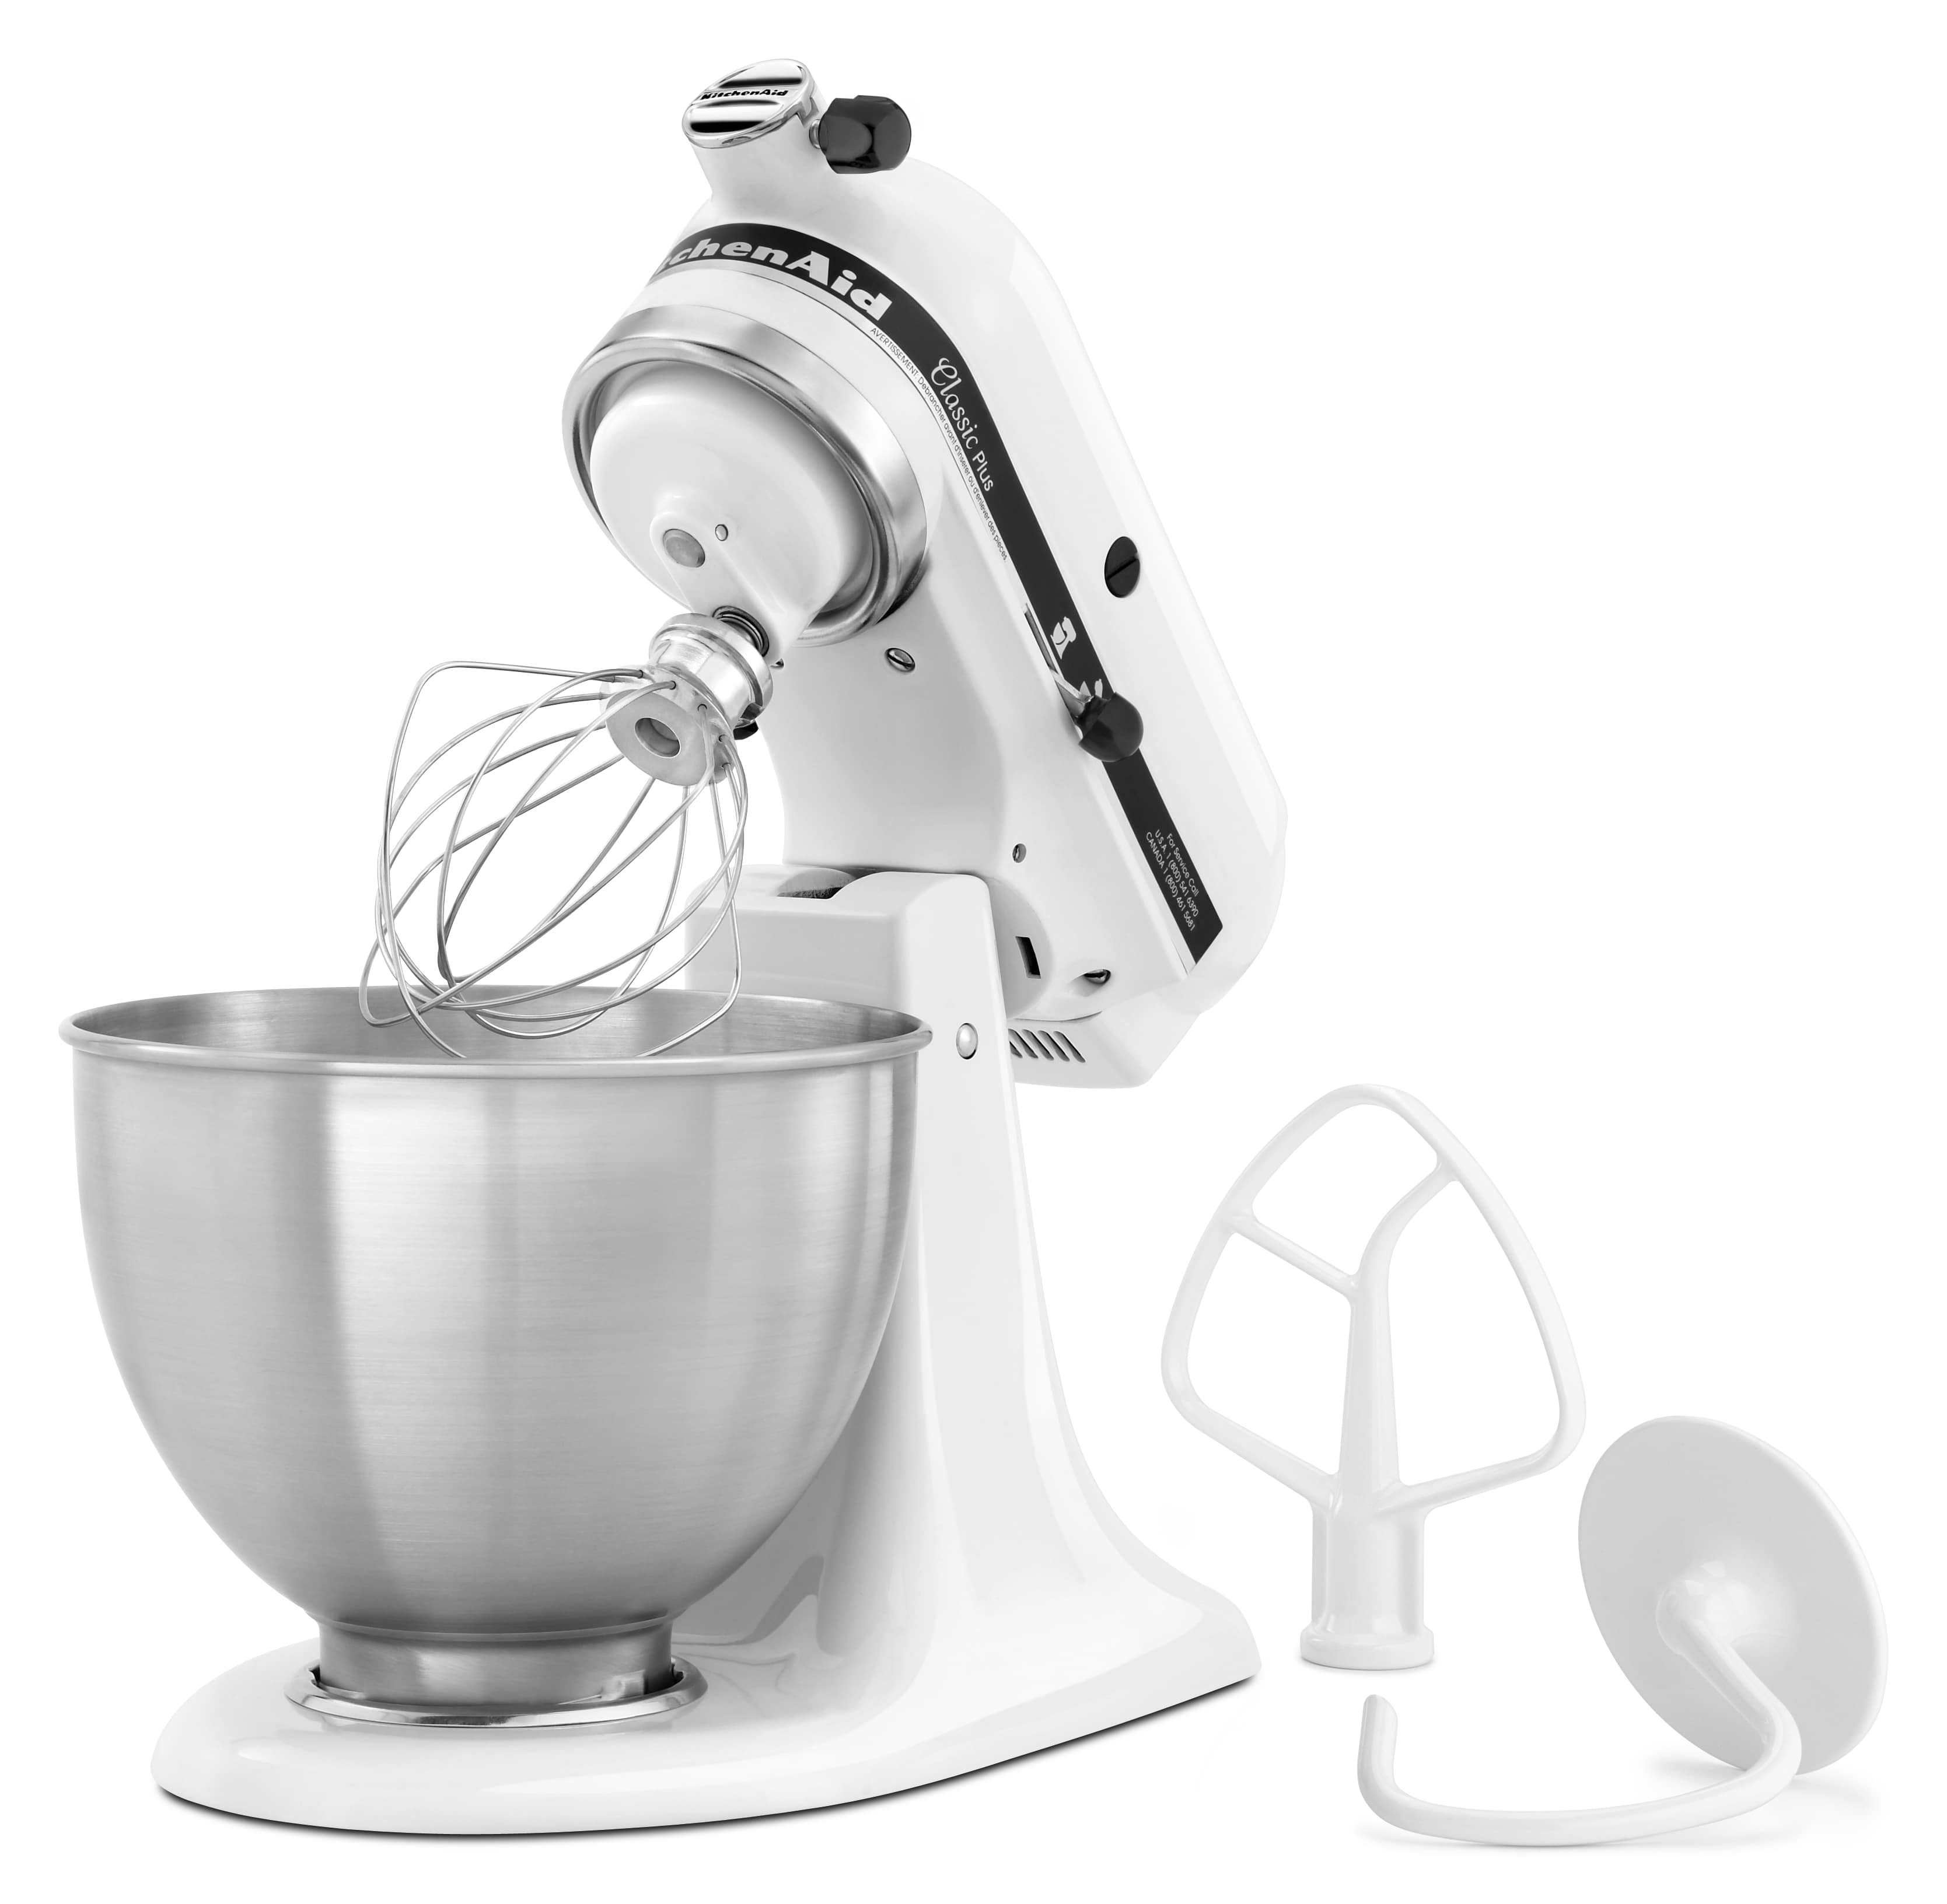 NEW-KitchenAid-Classic-Plus-Series-4-5-Quart-Tilt-Head-Stand-Mixer-KSM75 thumbnail 15